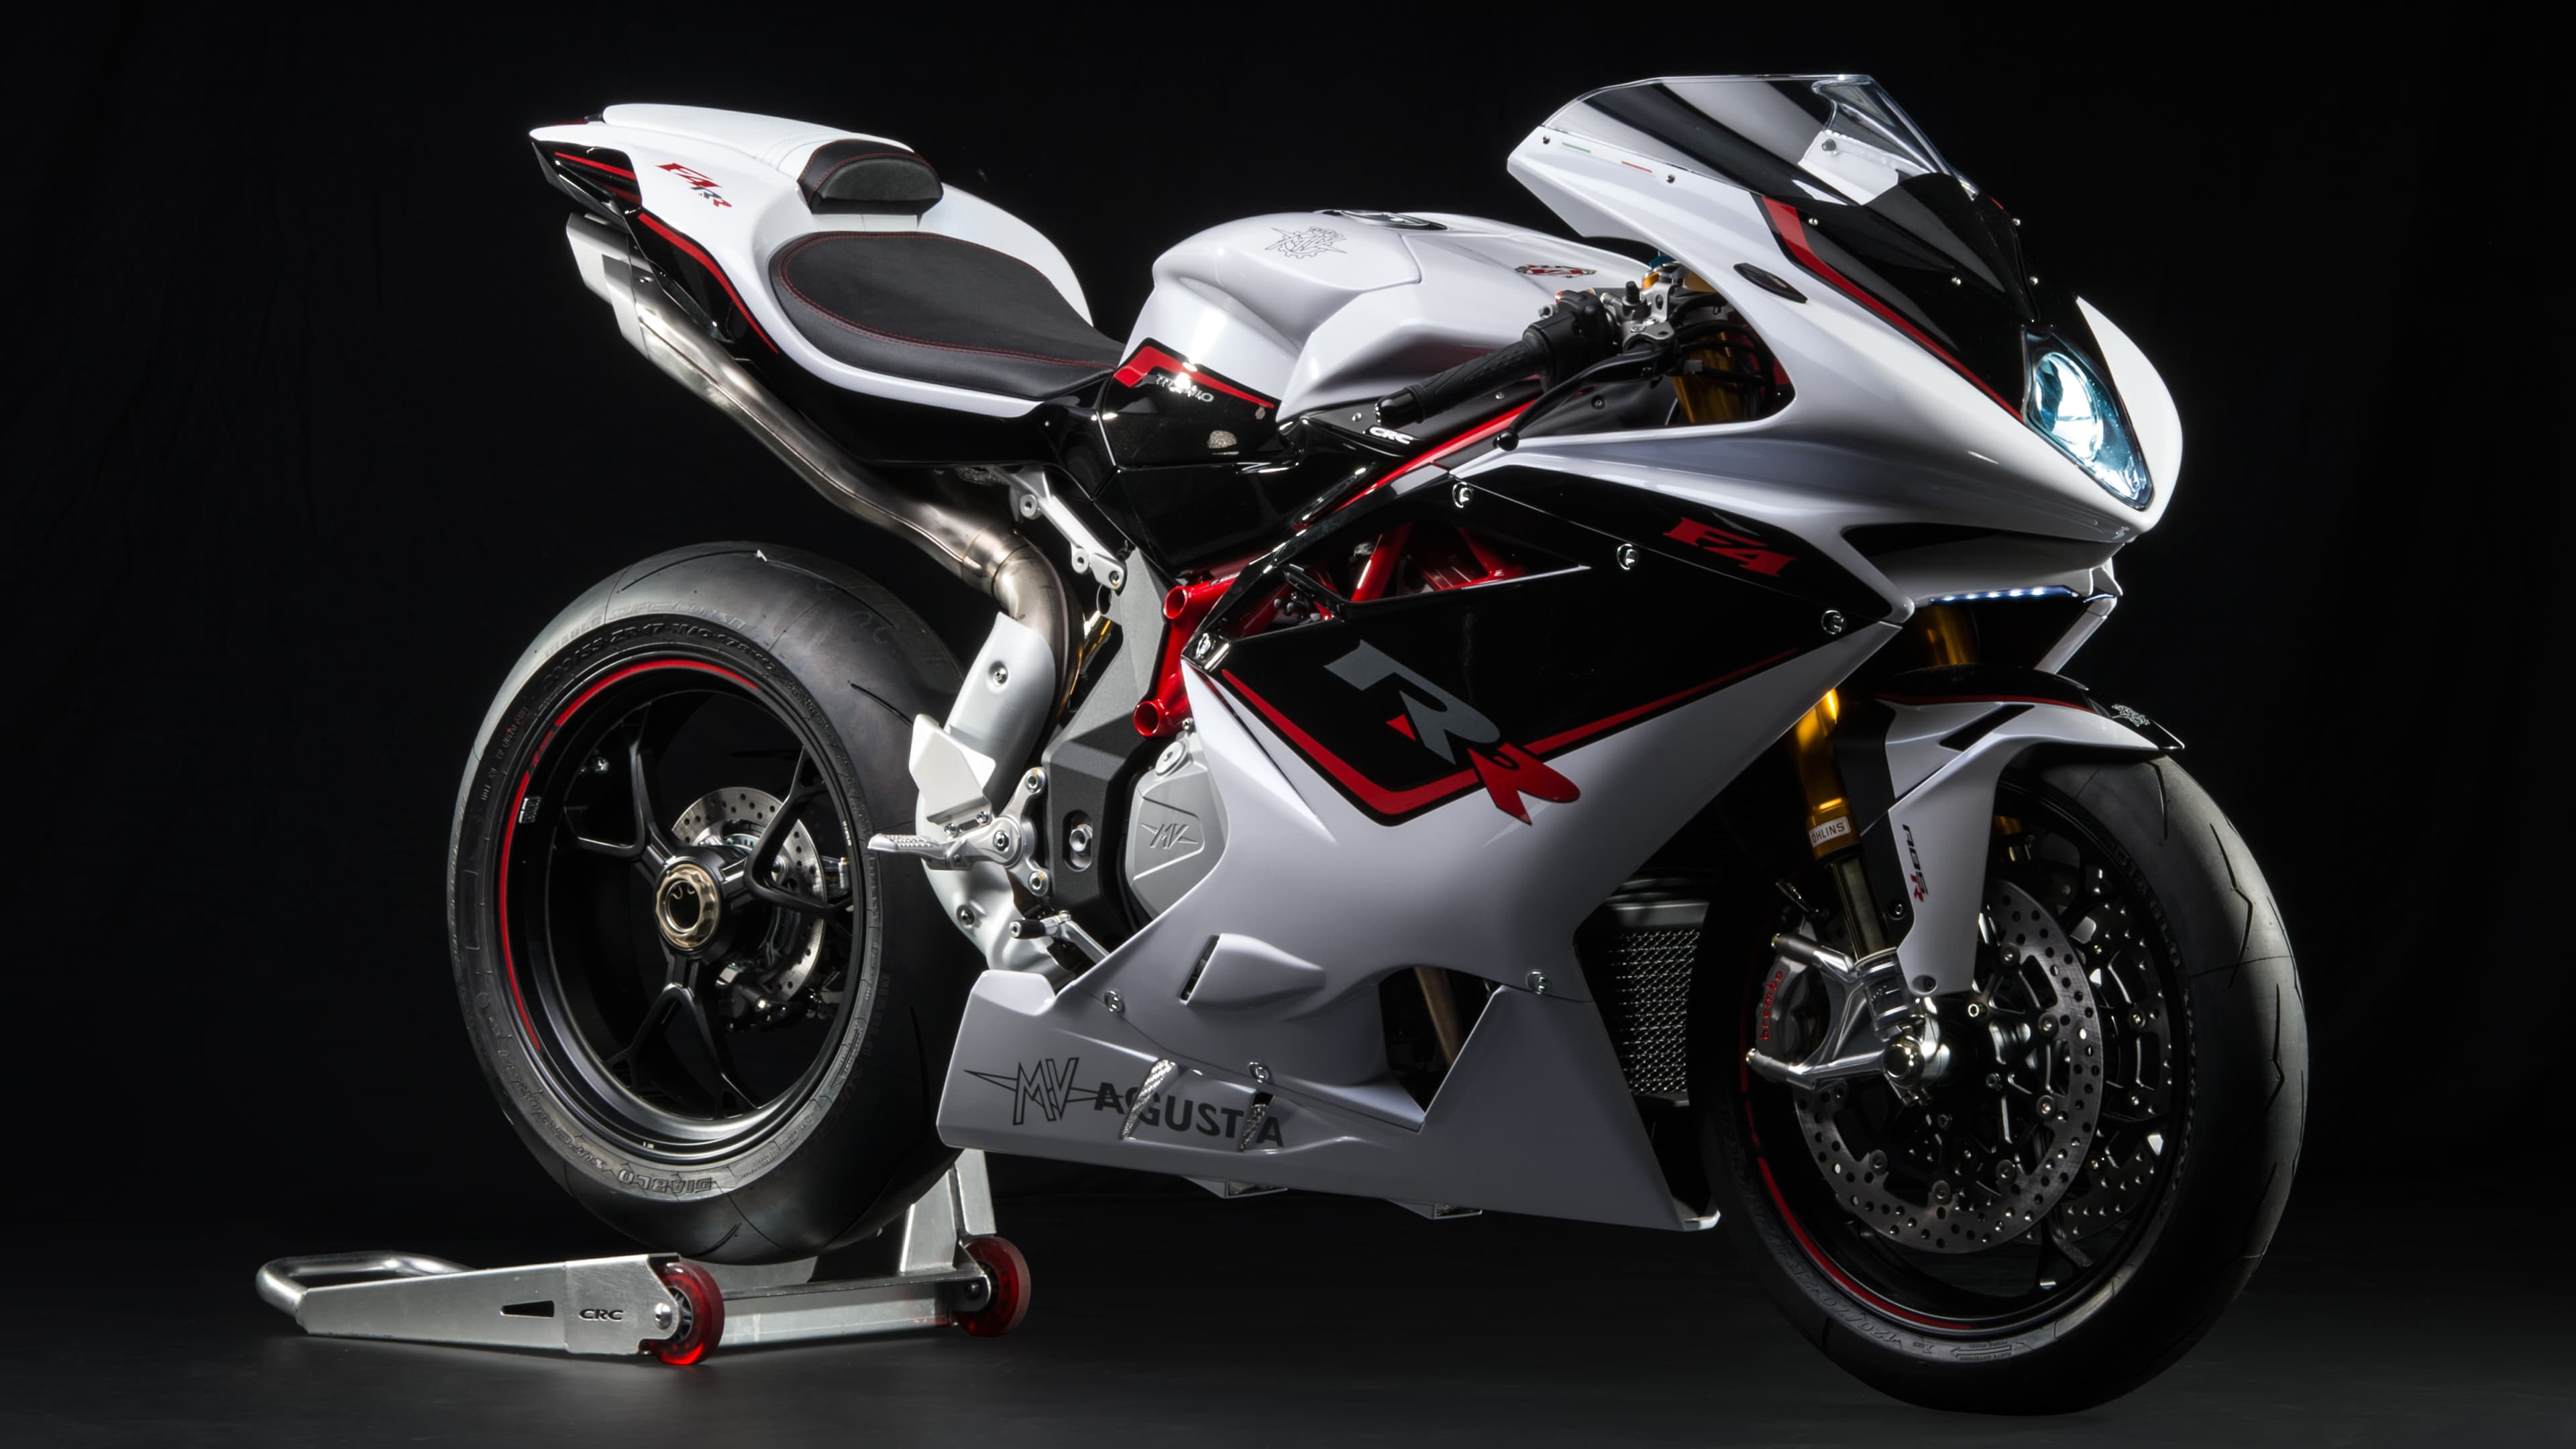 mv agusta f4 rr abs city moto benelux. Black Bedroom Furniture Sets. Home Design Ideas